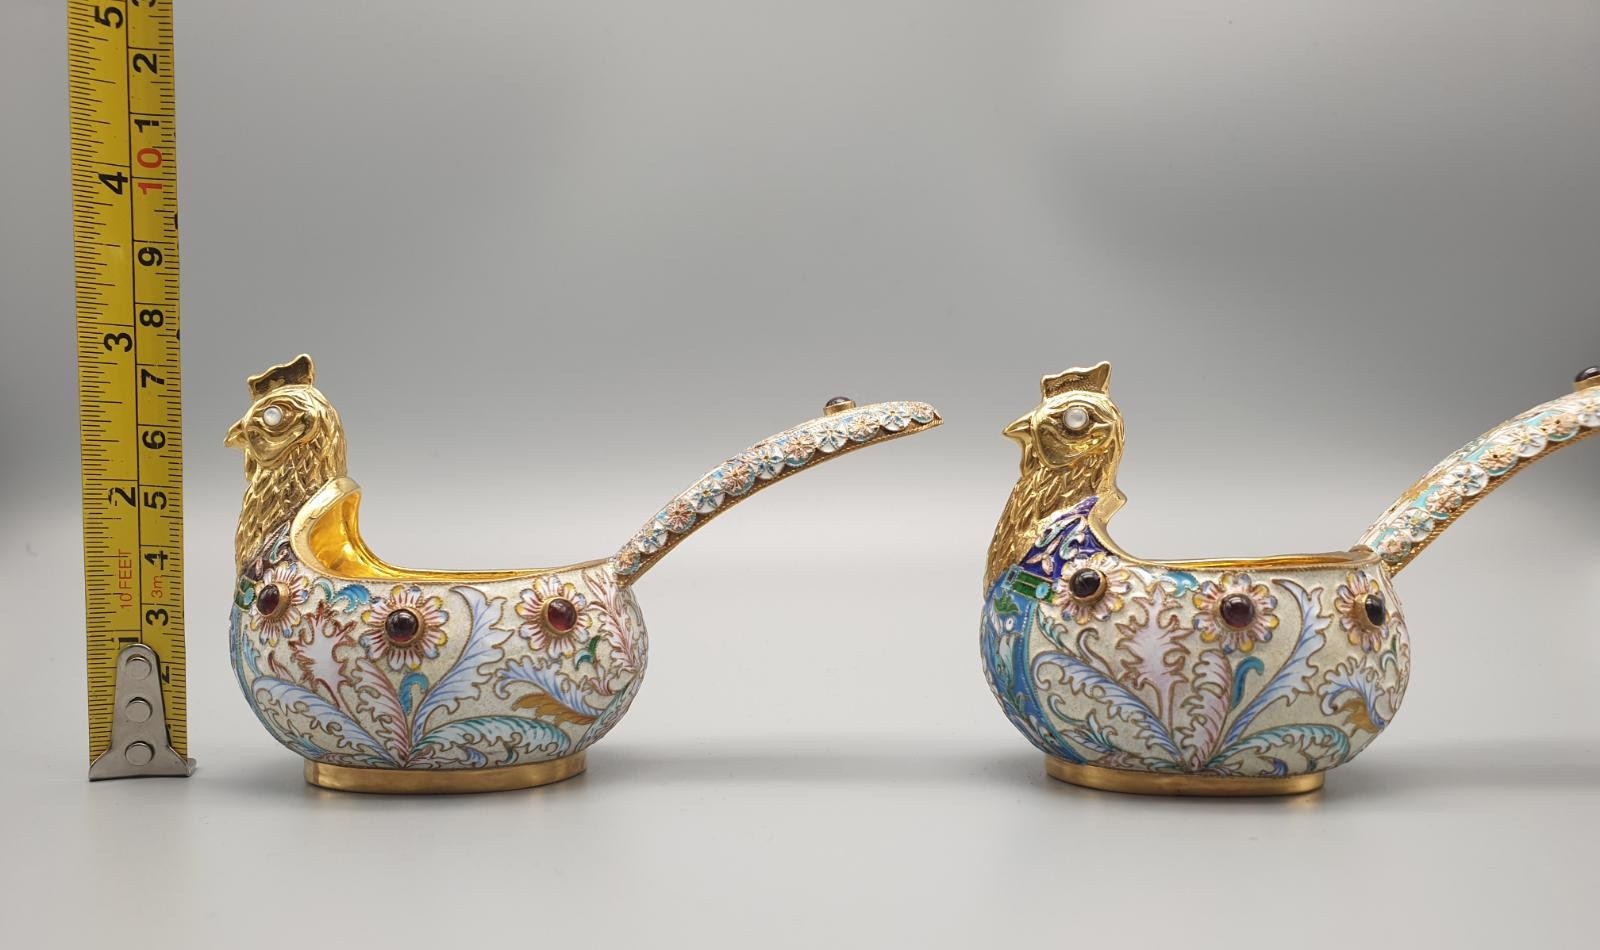 Pair of Russian 20th century silver enamel gemset kavosch bowl in the form of birds, an exquisite - Image 18 of 29